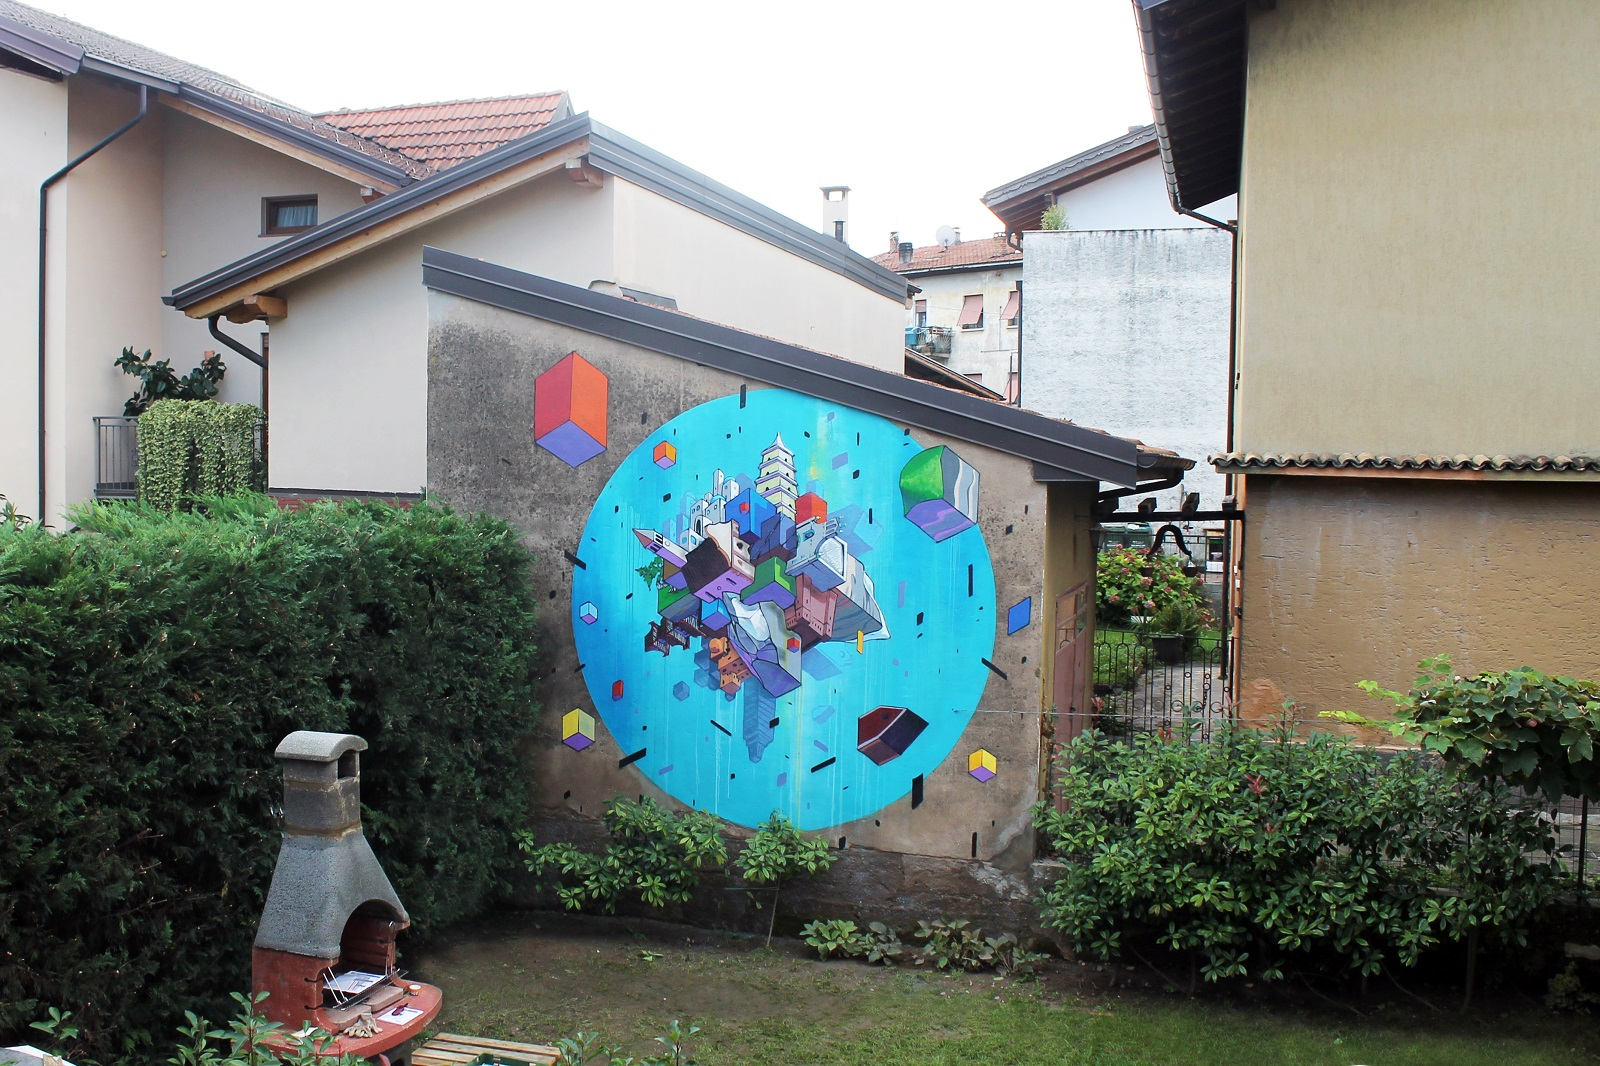 etnik-new-mural-in-trento-03